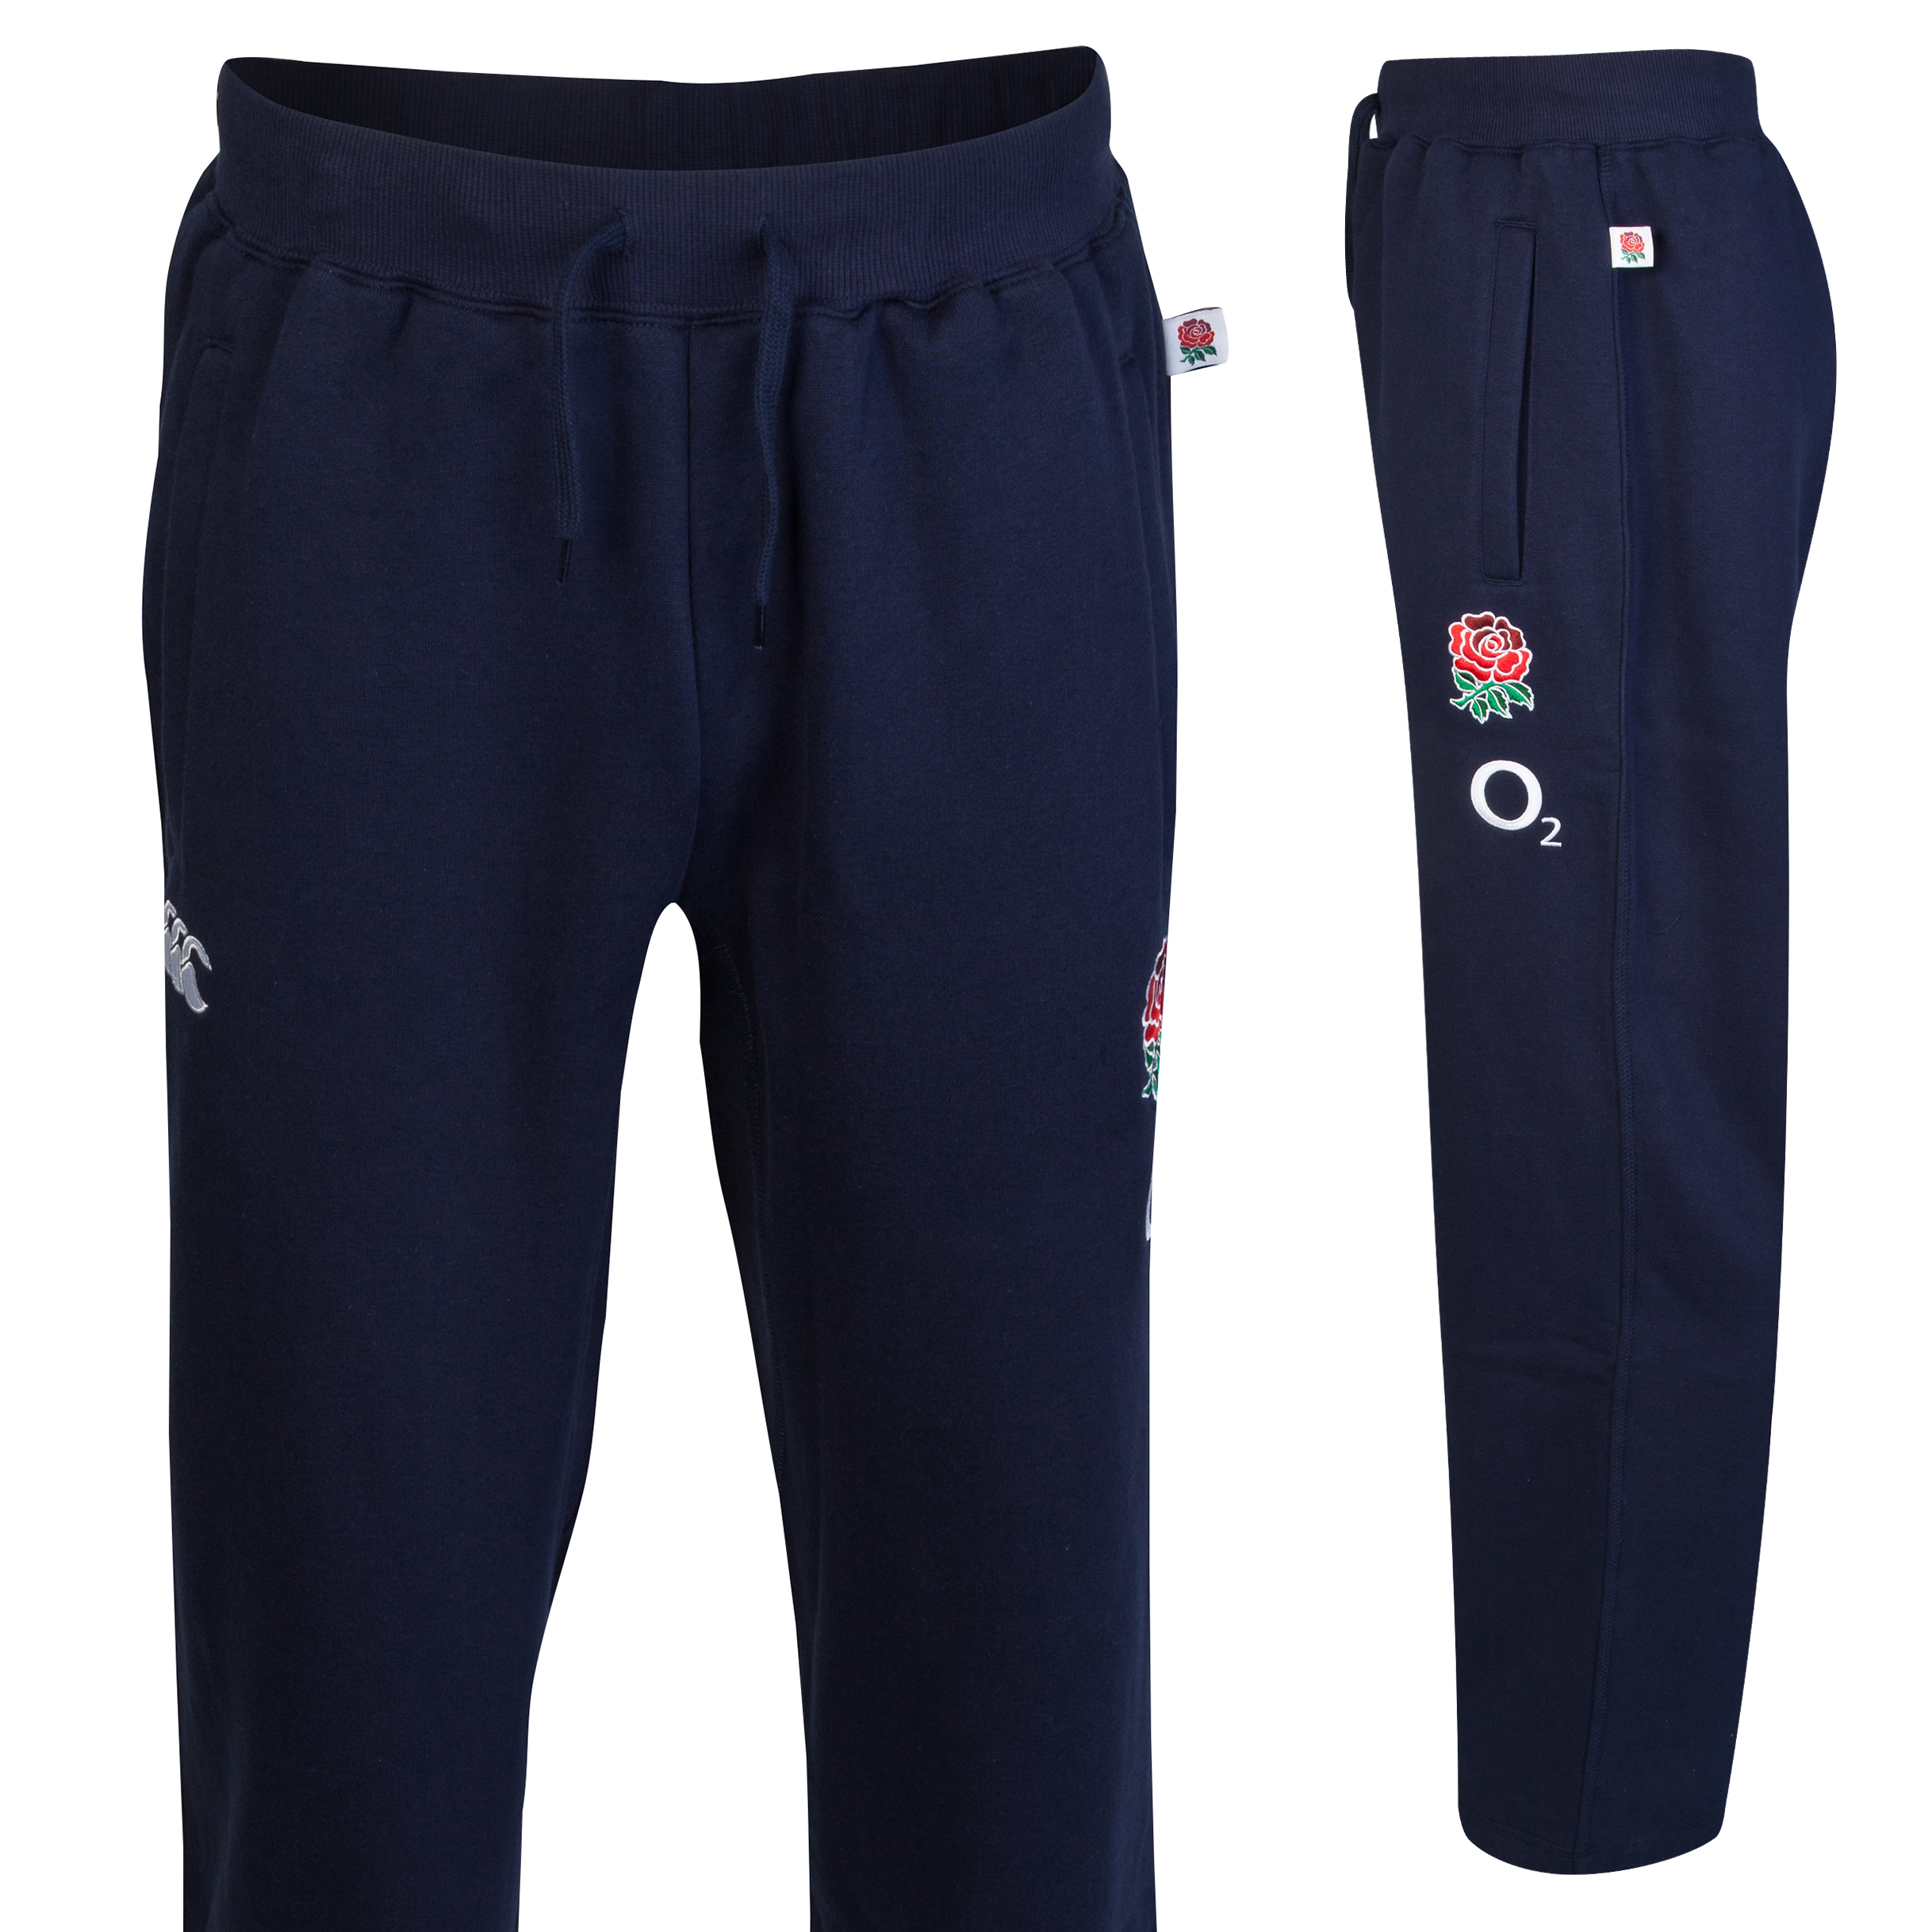 England Combination Fleece Pants